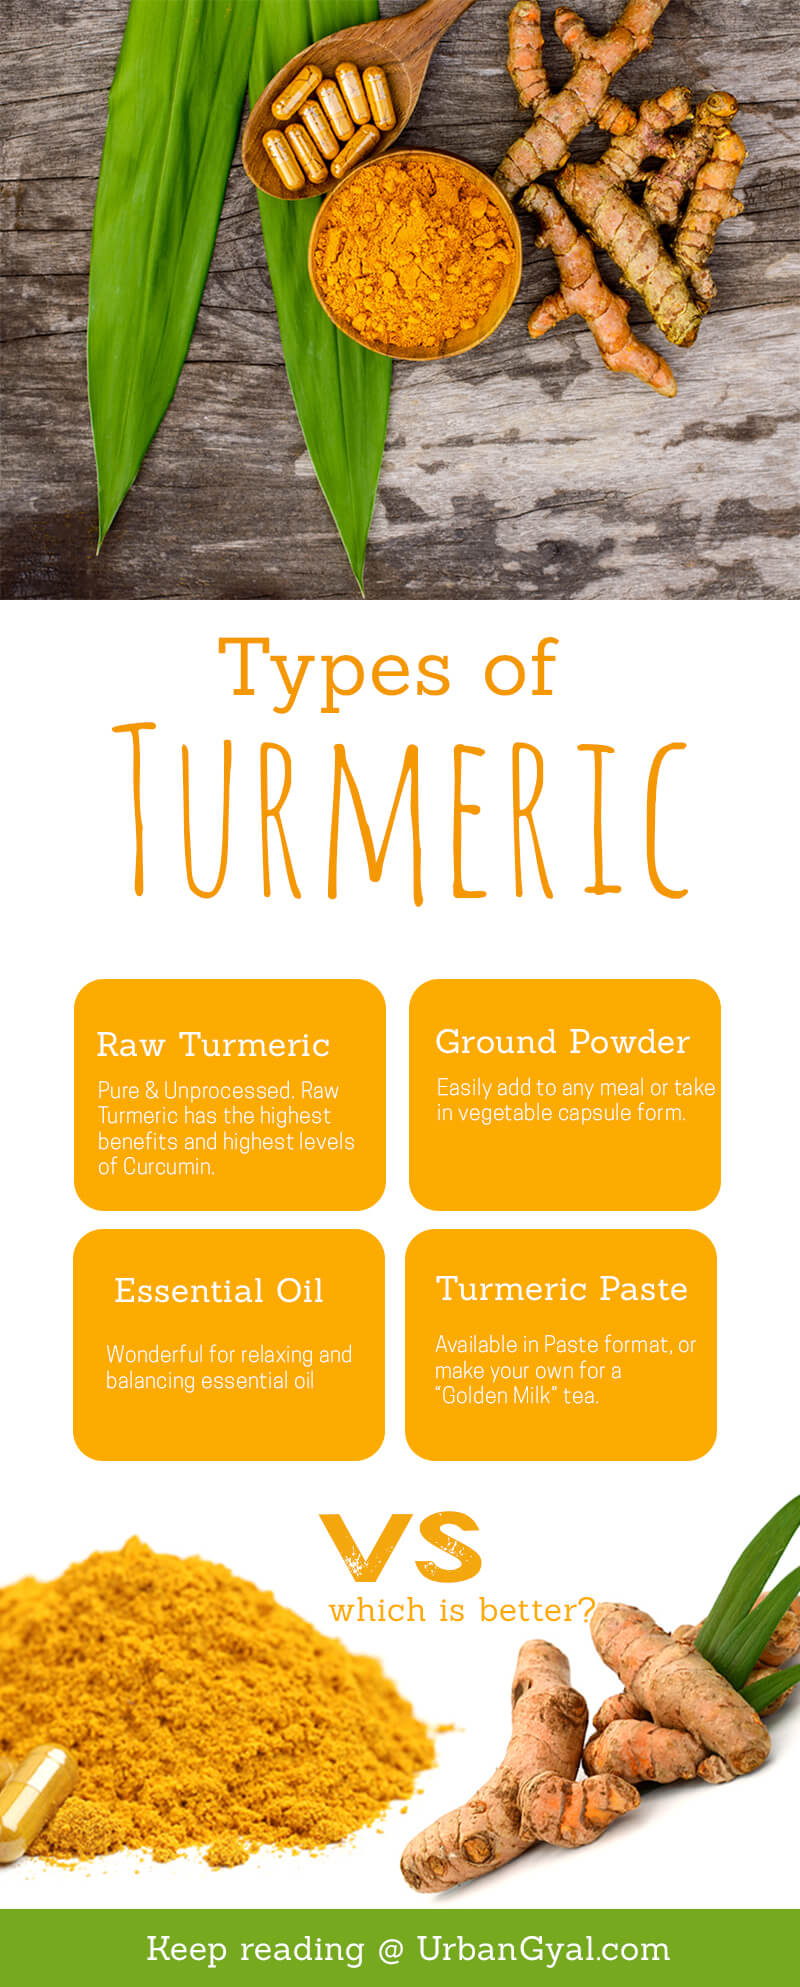 Types of Turmeric, Which is Better Raw or Ground Turmeric?